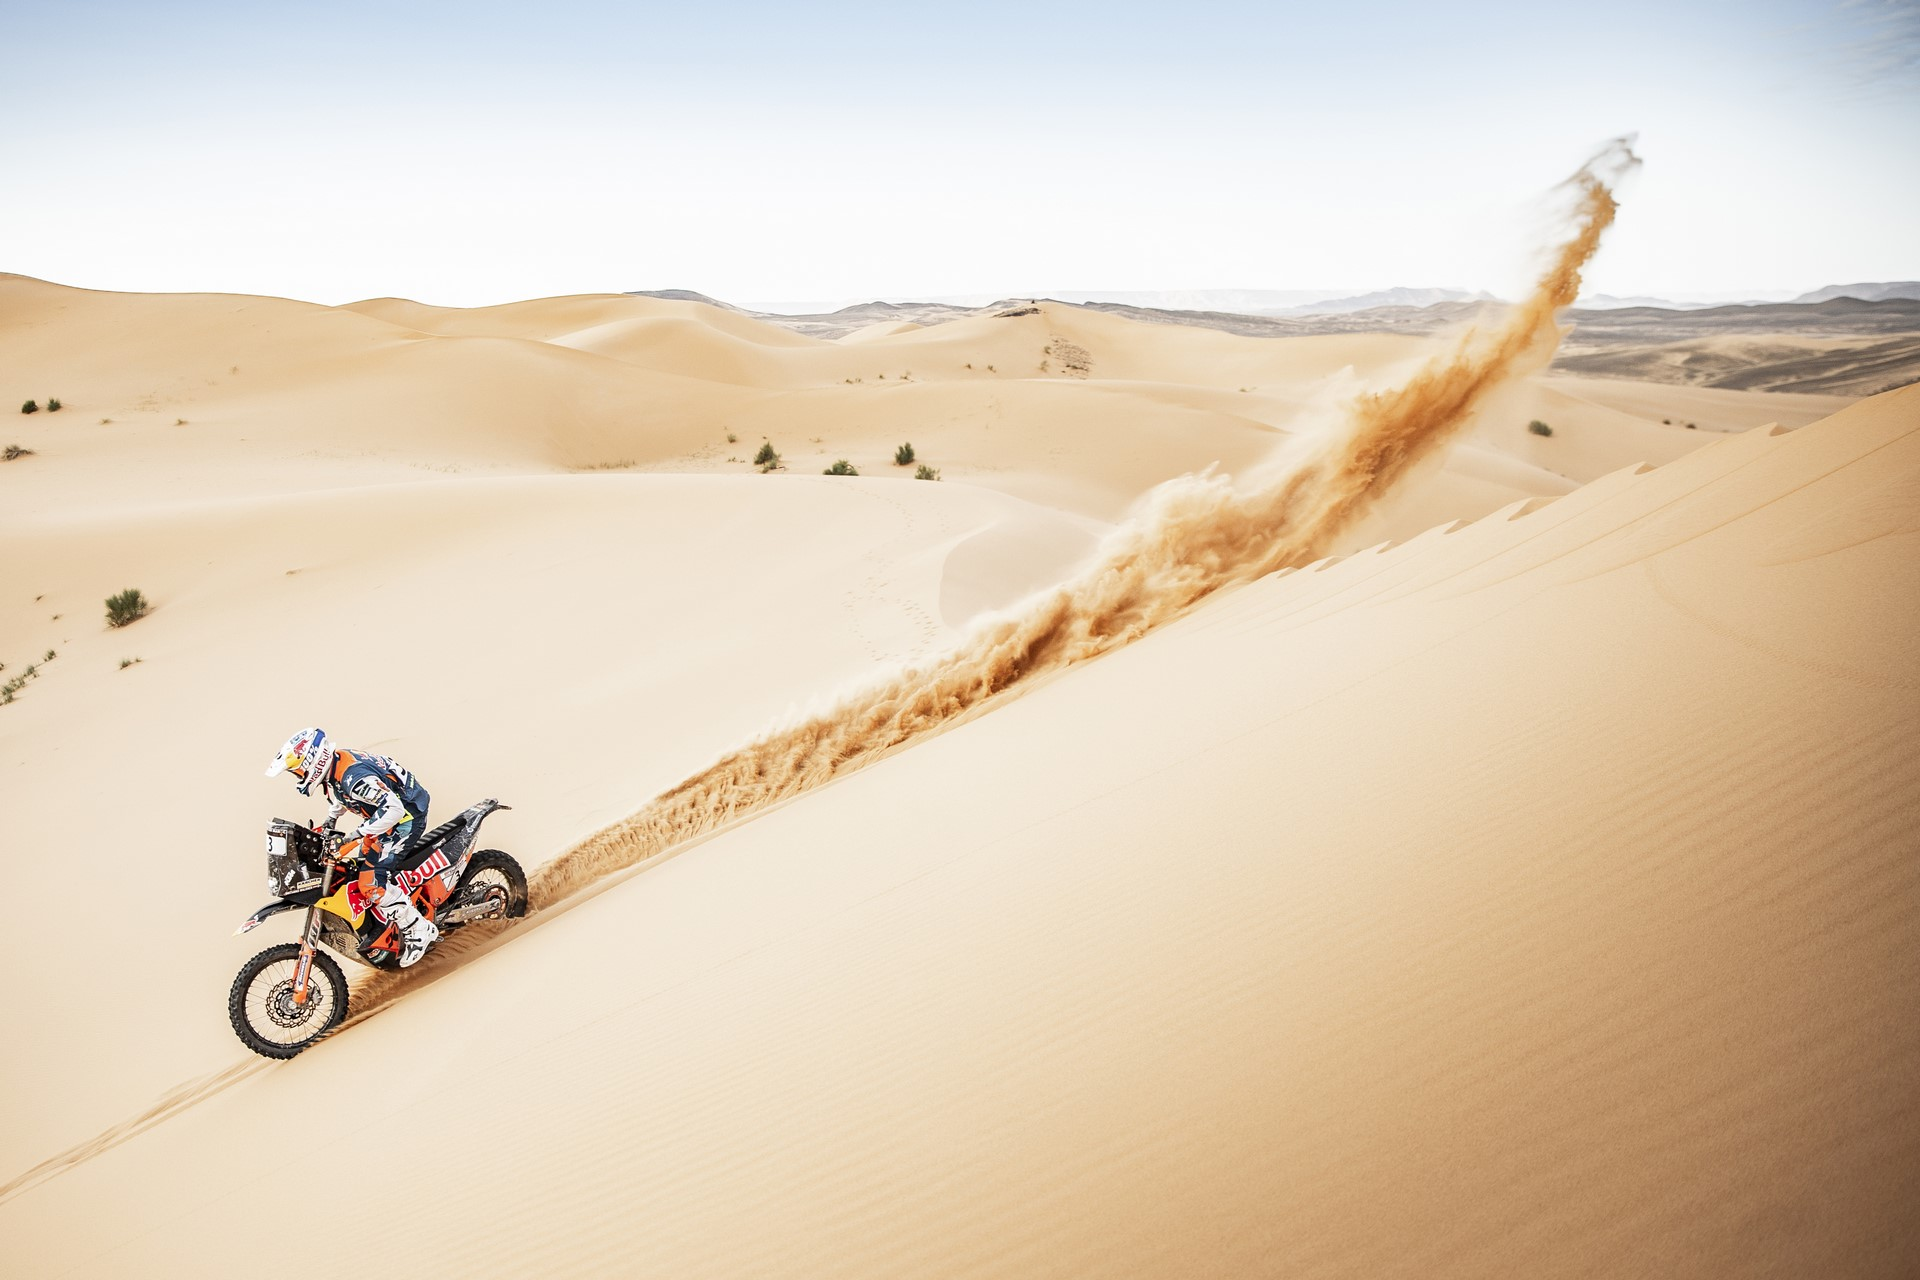 Matthias Walkner at the 4th stage of Rally Du Maroc in Erfoud, Morocco on October 08, 2018